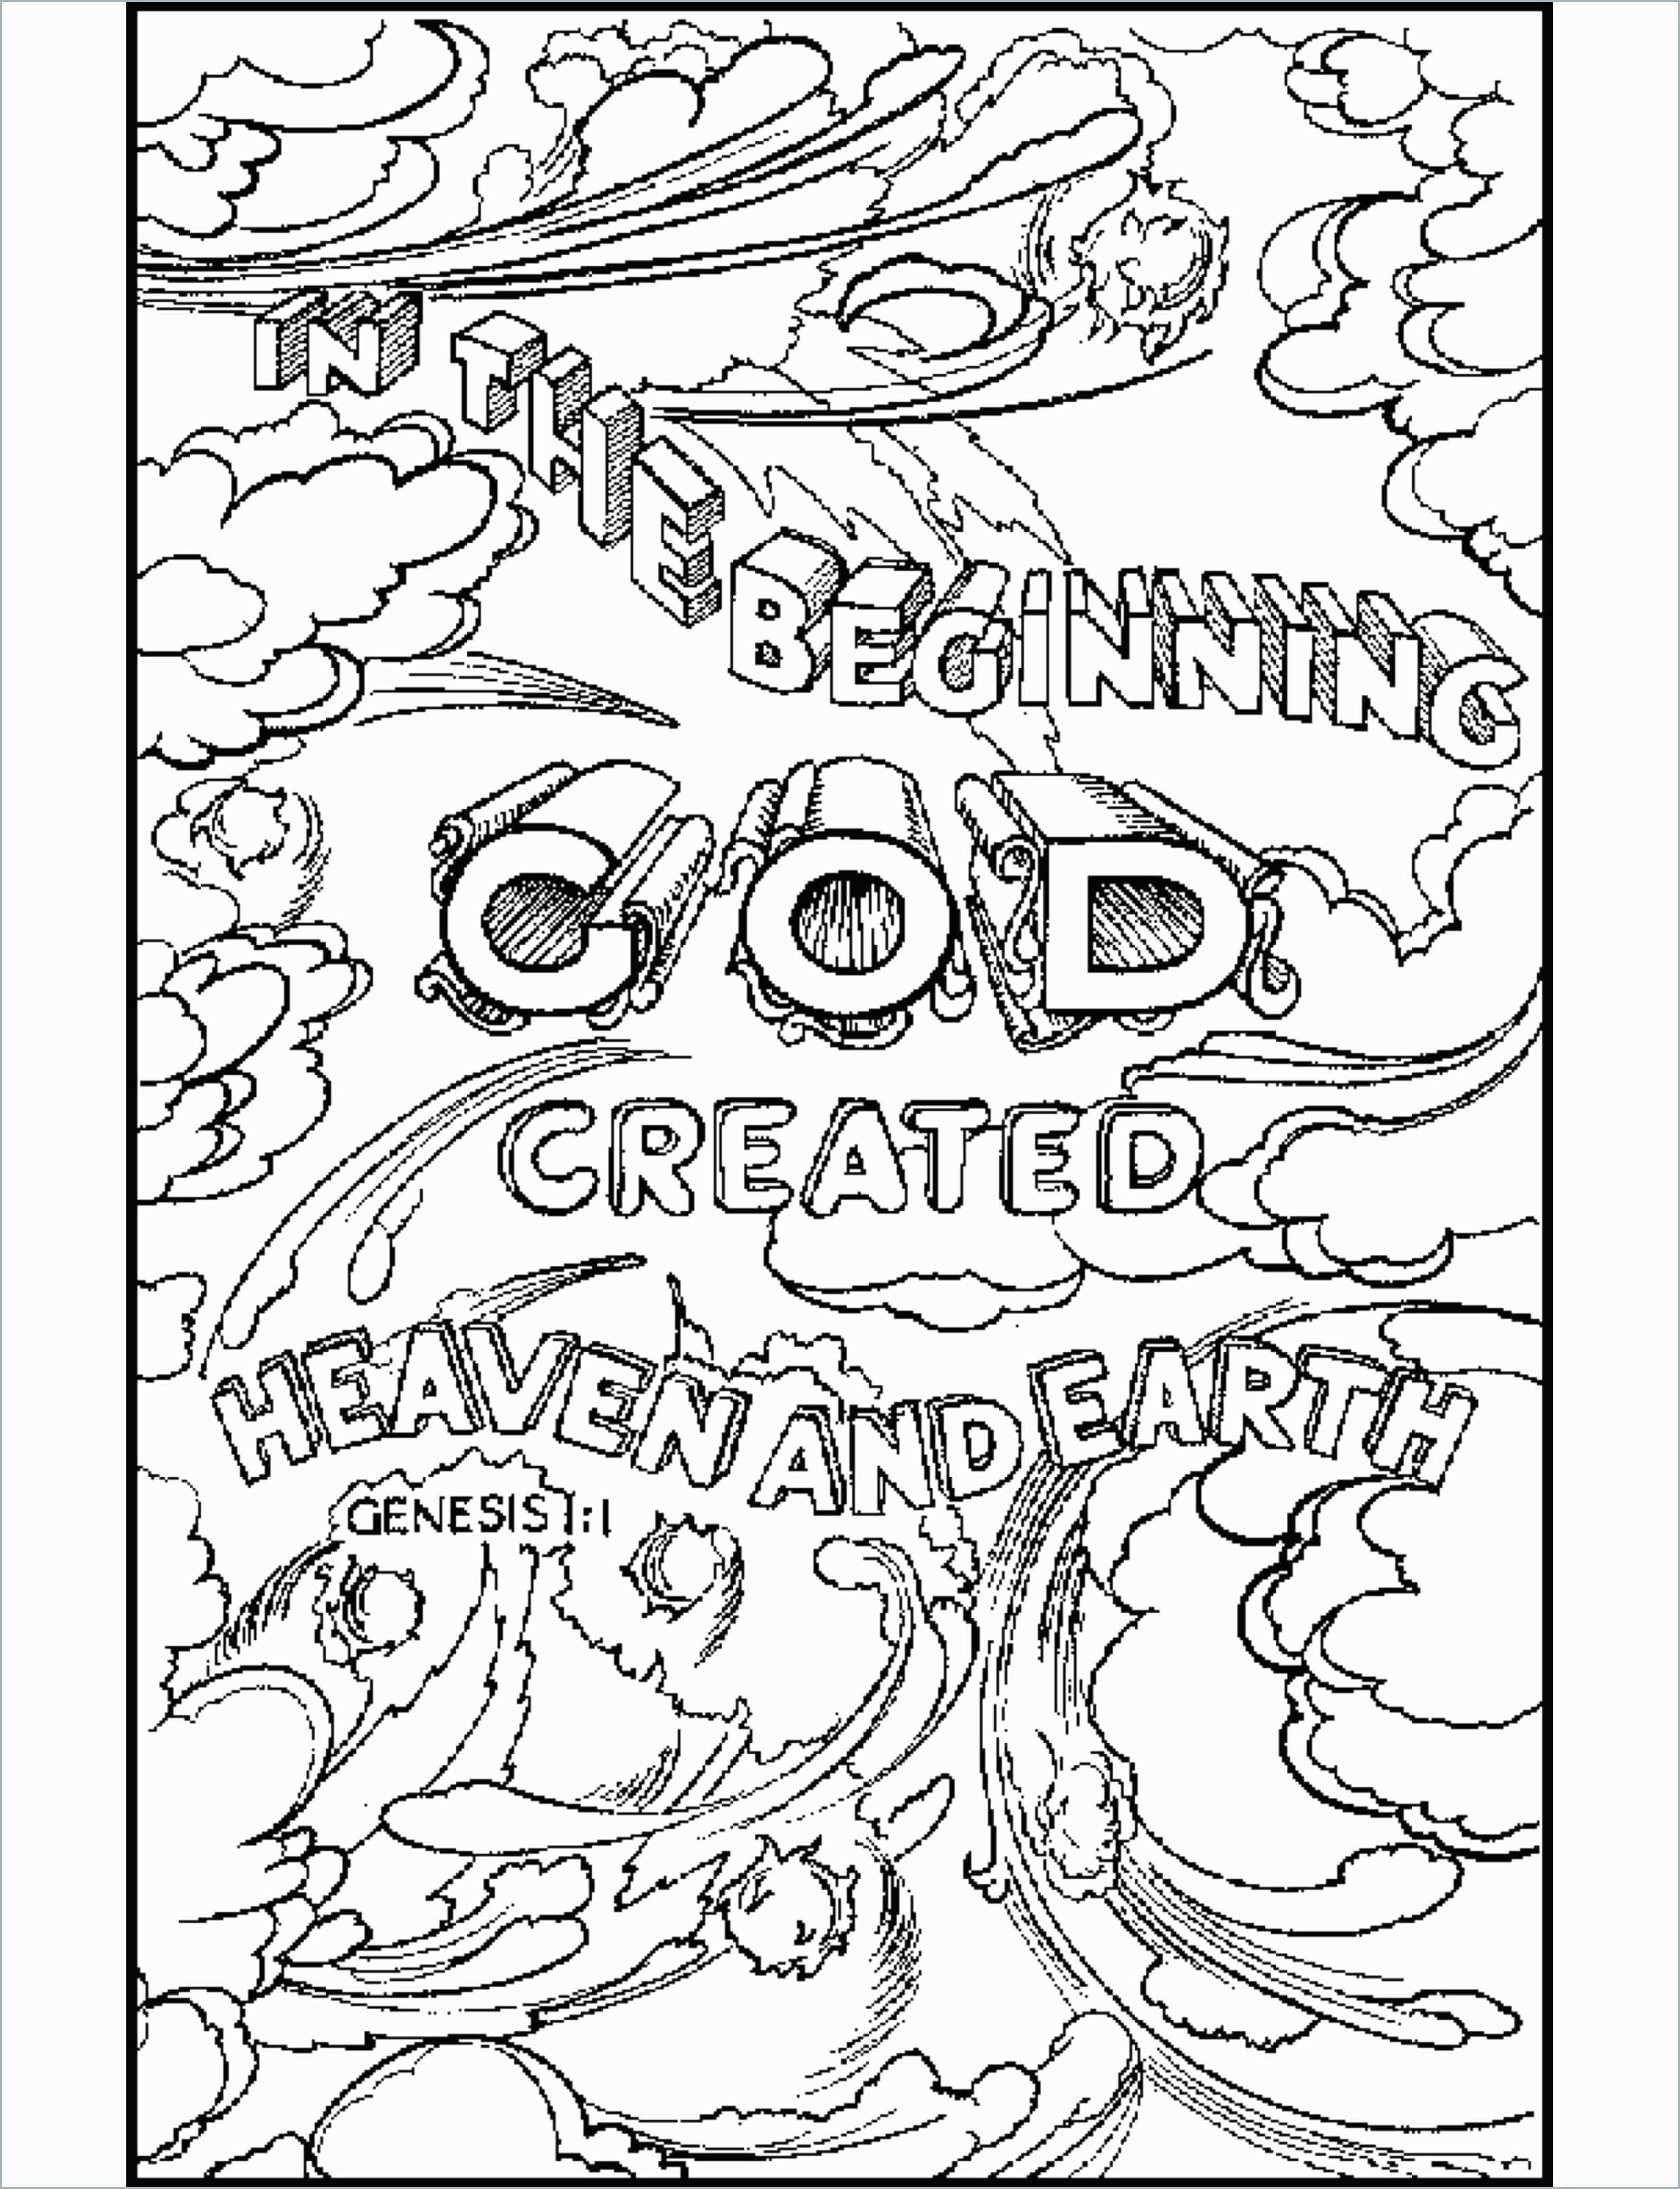 Coloring Pages : Free Printable Bible Coloring Pages With Scriptures - Free Printable Bible Coloring Pages